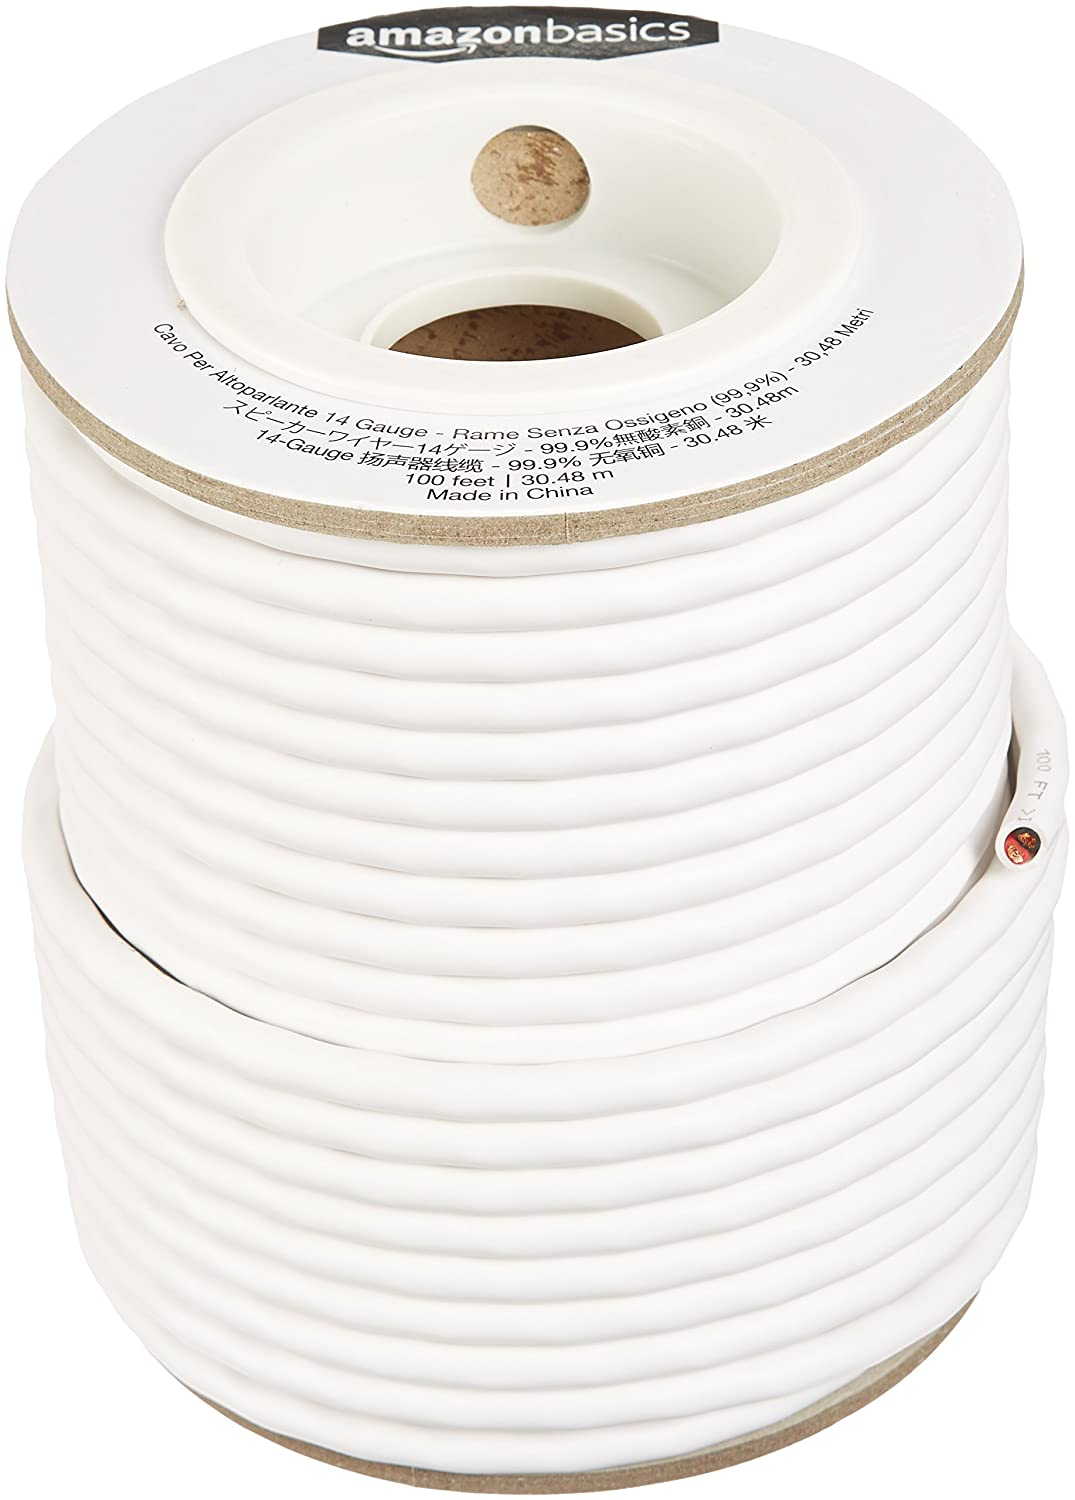 Amazonbasics Speaker Wire 12 Gauge 999 Oxygen Free Basement Wiring Copper 100 Feet Electronics